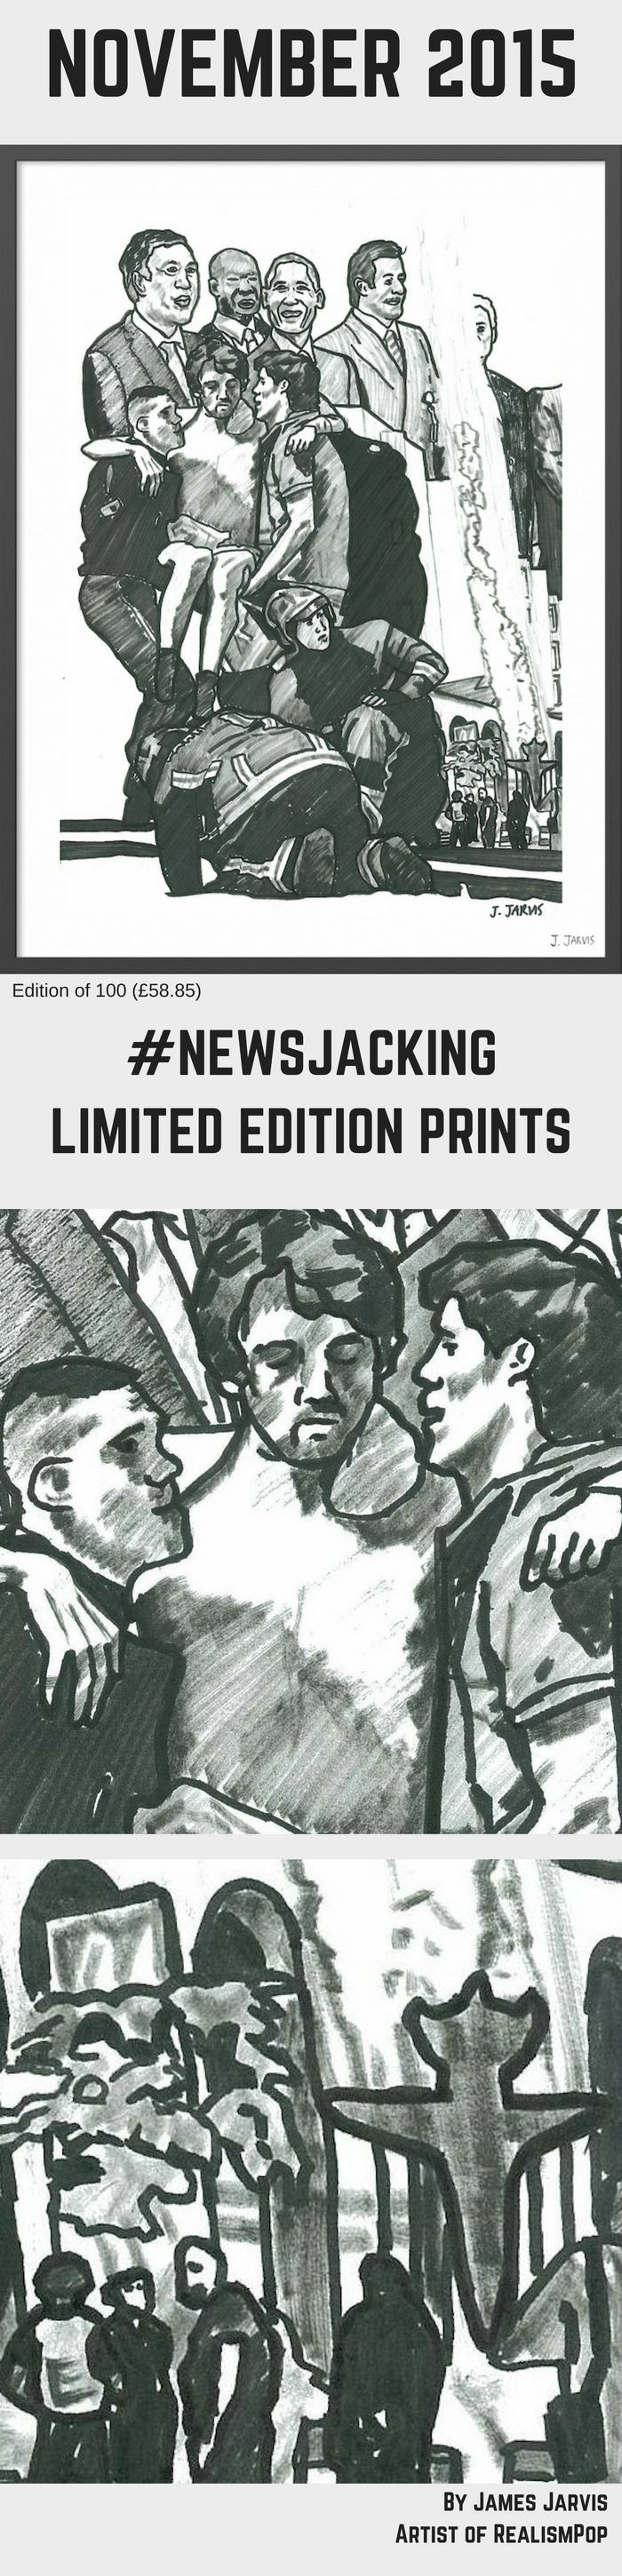 November 2015 (£58.85). Limited edition print. Black and white illustration featuring a monthly collage of breaking news stories; Three coordinated attacks by ISIS kill dozens in Paris; At least 27 are killed at the Radisson Blu hotel in Bamako, Mali; Russian warplane is shot down in Turkey; Several world leaders gather for historic U.N. climate talks.